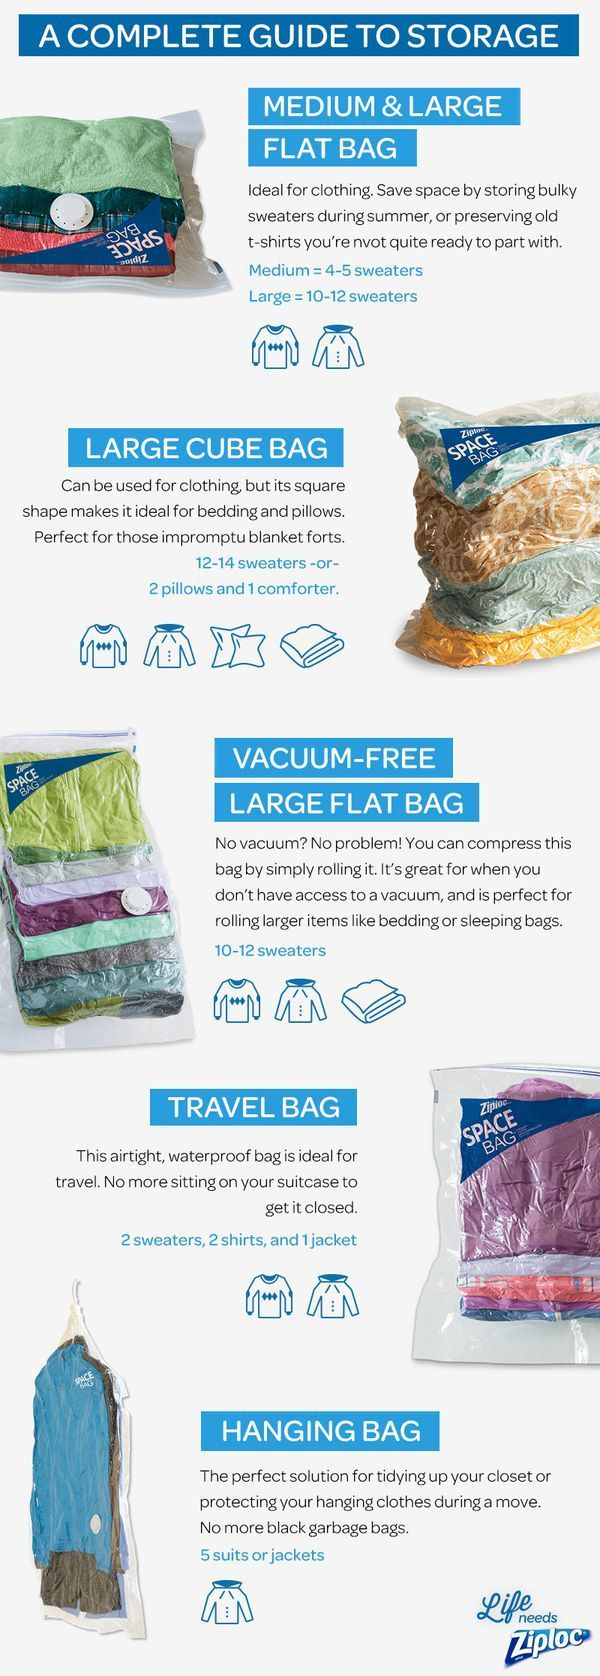 Swap out your seasonal clothes and stay organized with Ziploc® Space Bag® products. Use these small-space storage solutions to clean up your bedroom or linen closet. Each bag will free up space and is perfect for storing bulky winter clothes and bedding or summer linens and towels. Simply stuff each bag, seal it up, and vacuum for up to 3x as much space.